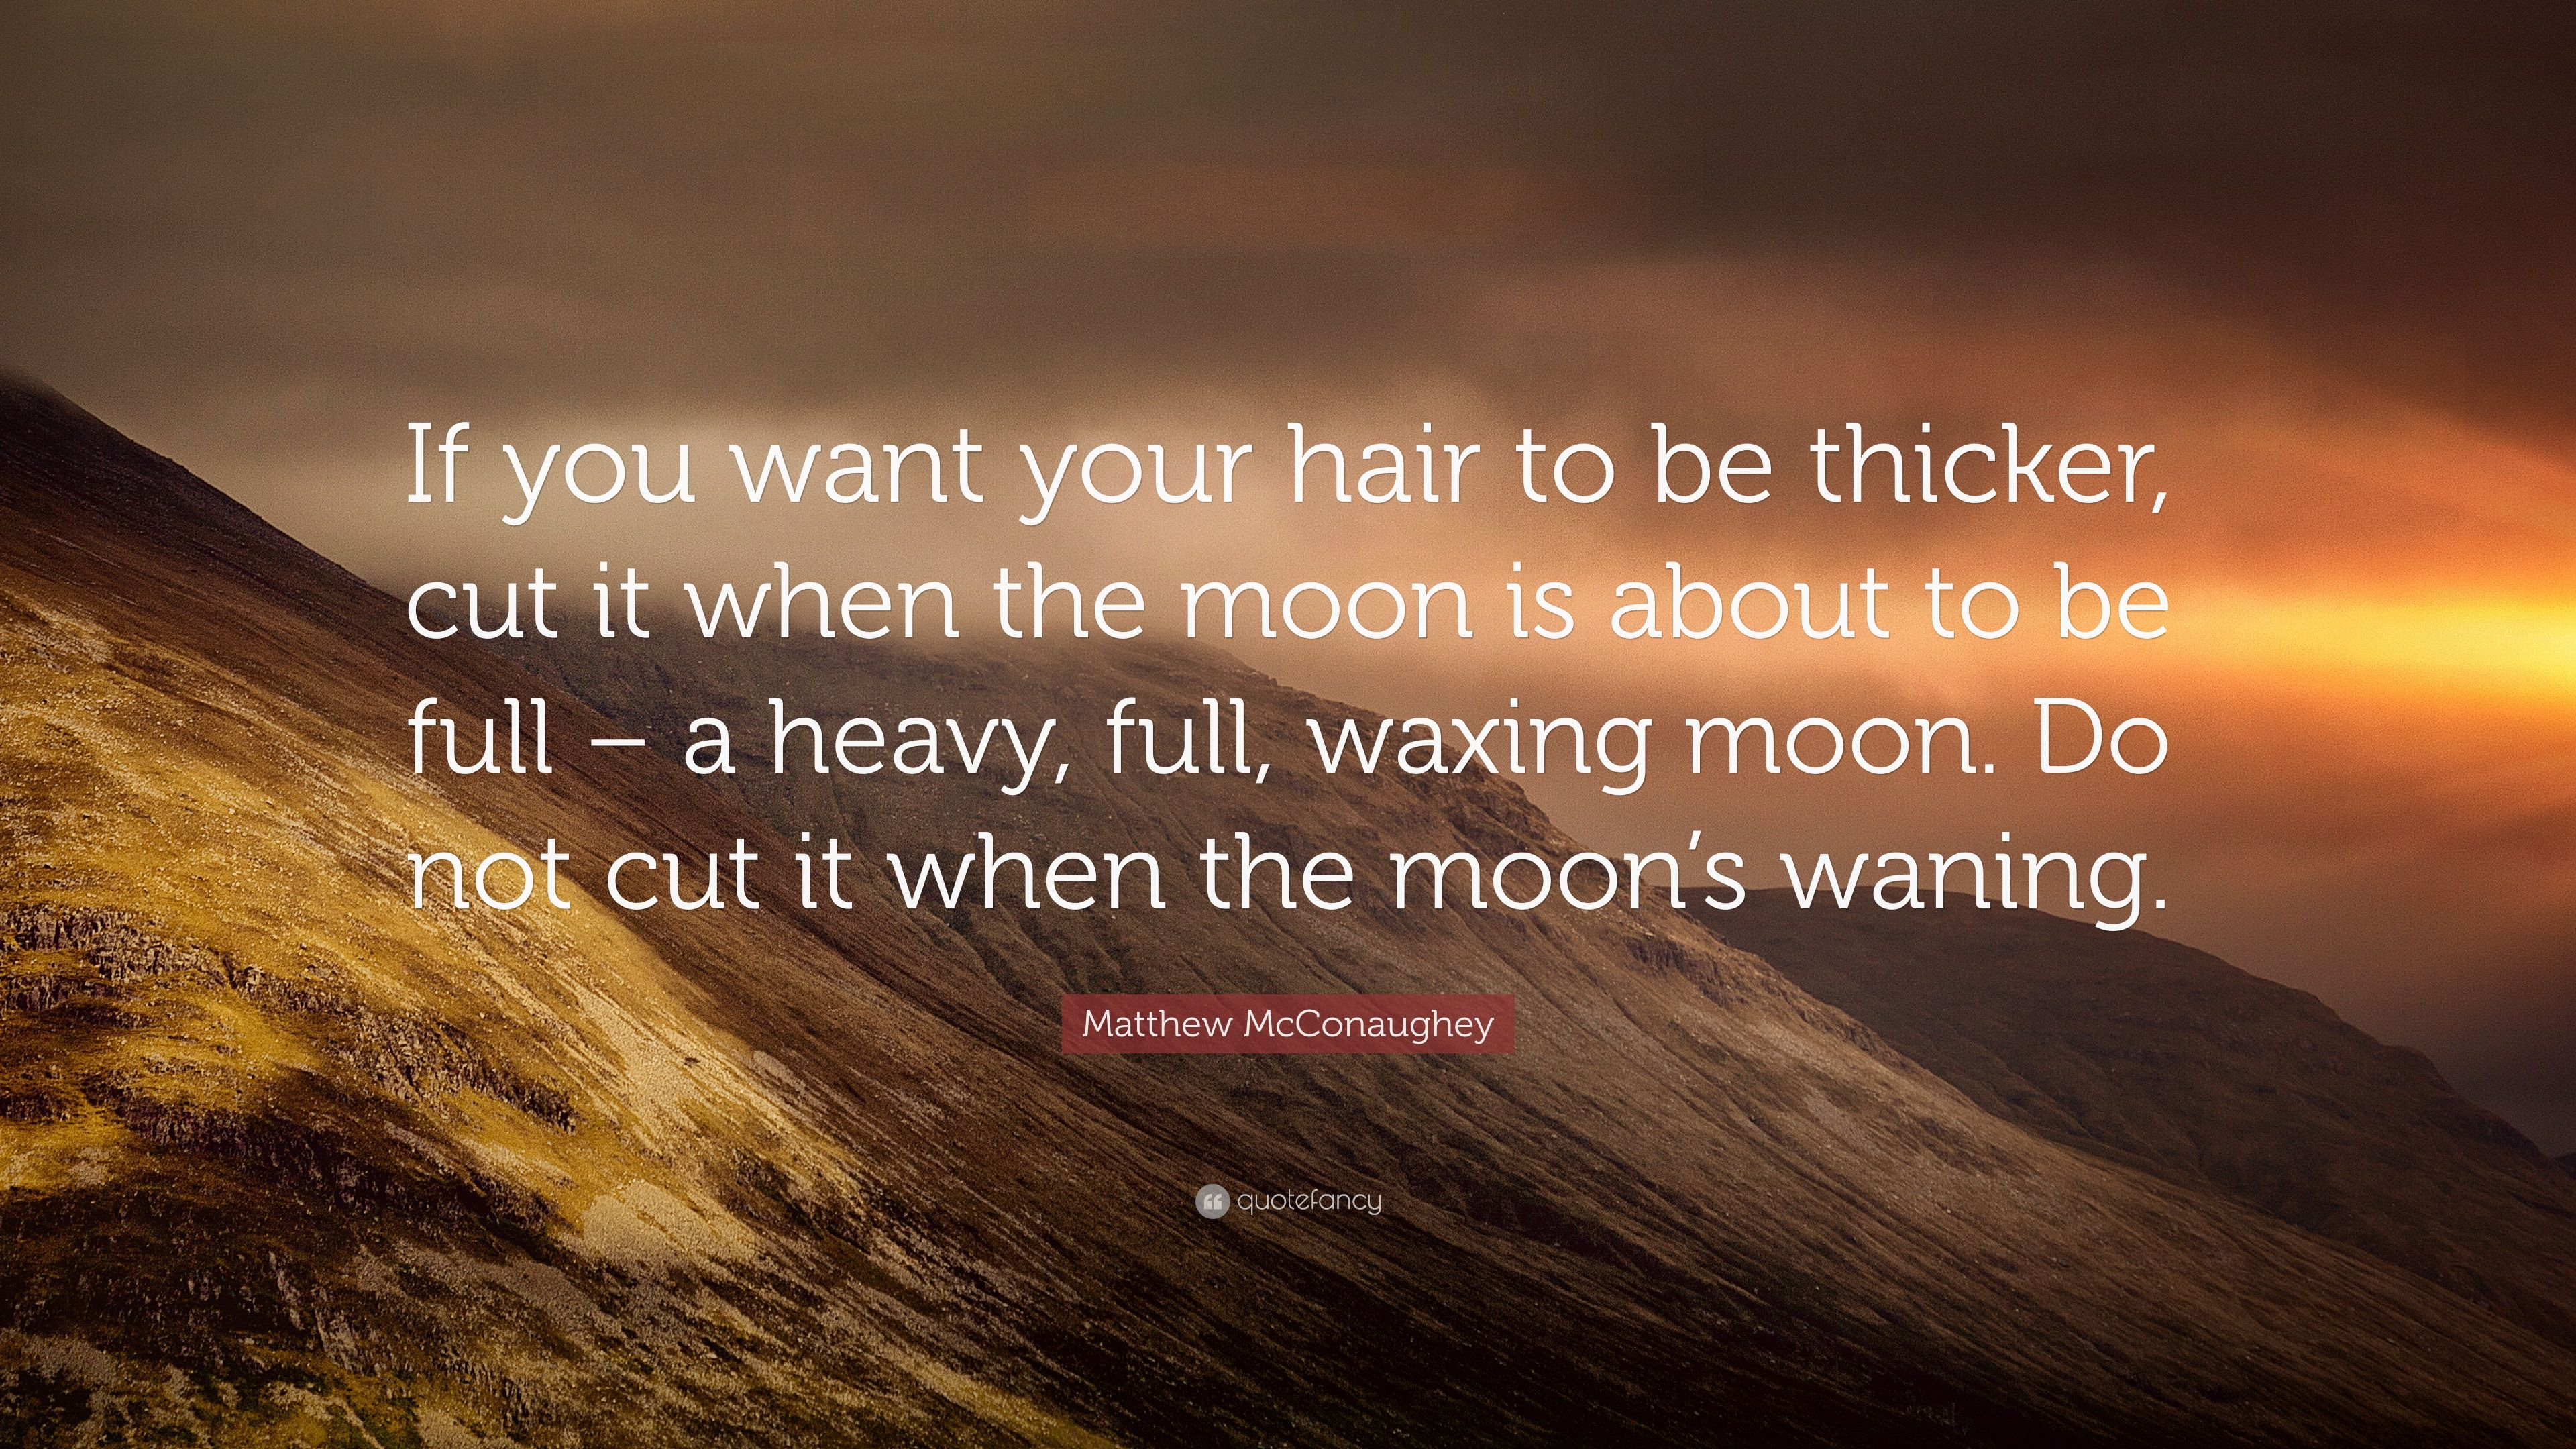 Matthew Mcconaughey Quote If You Want Your Hair To Be Thicker Cut